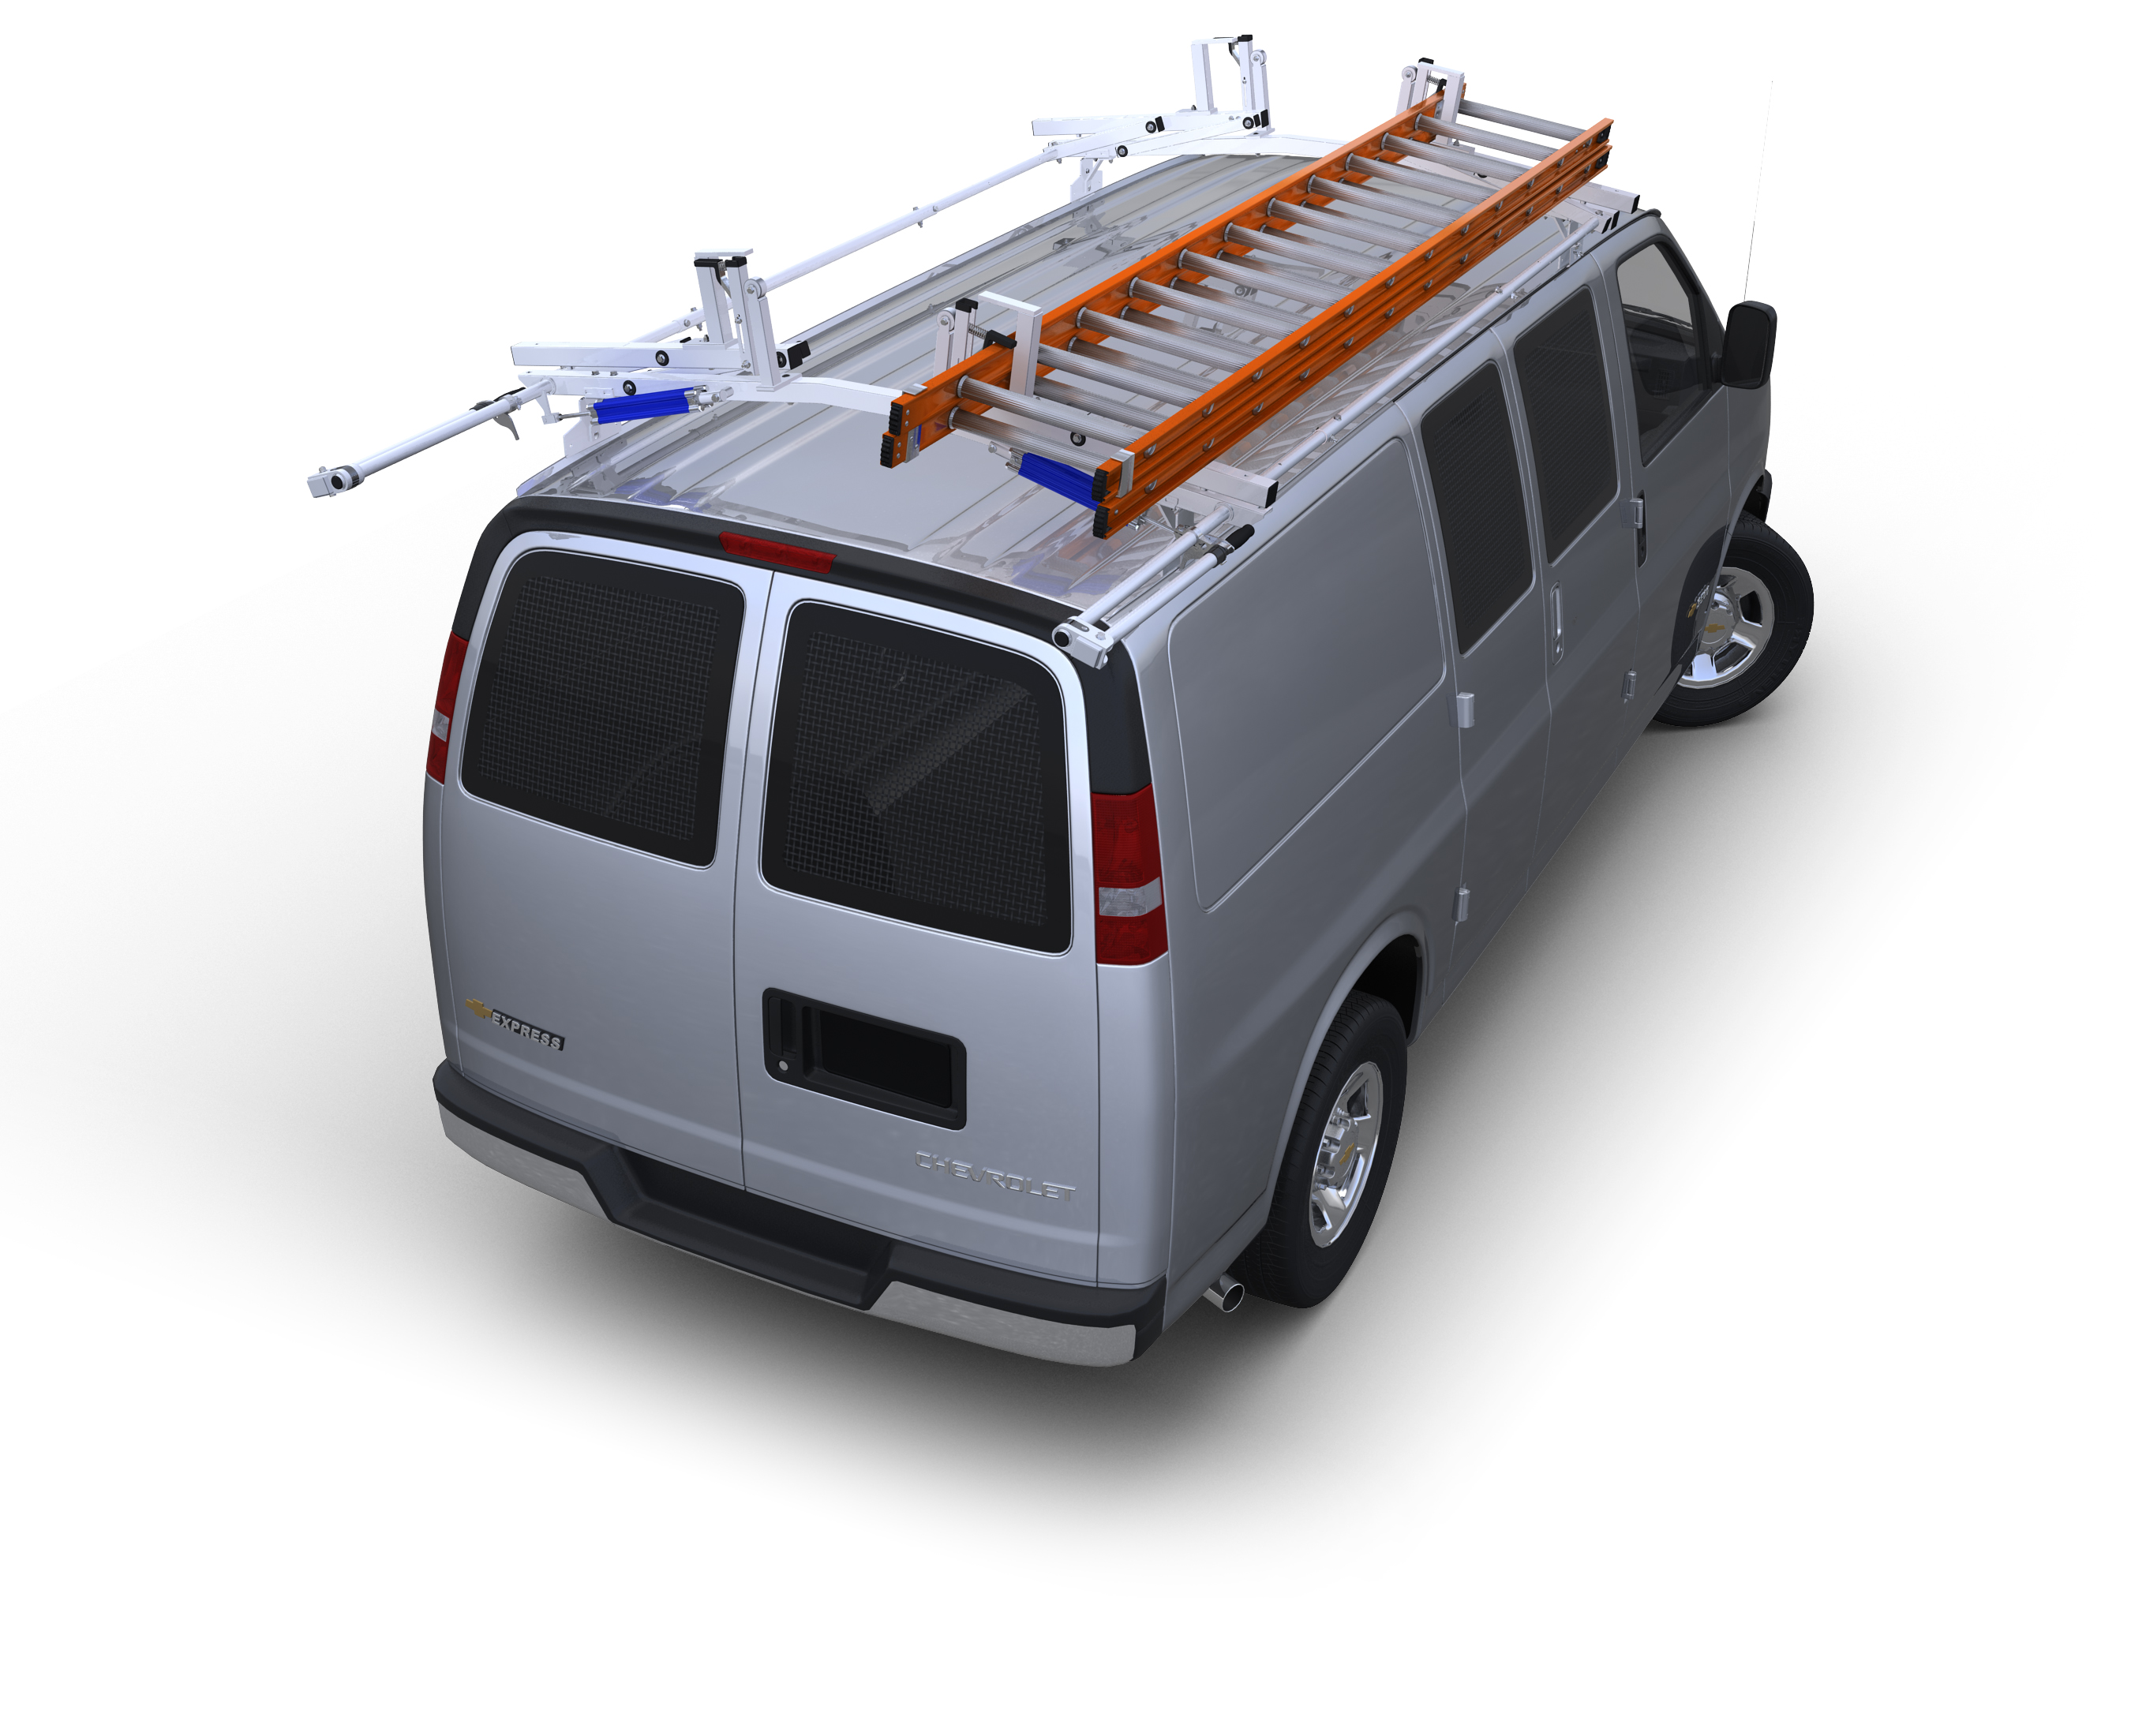 2014 & Newer Transit Connect Aluminum Contour Shelving w/ Back and Door